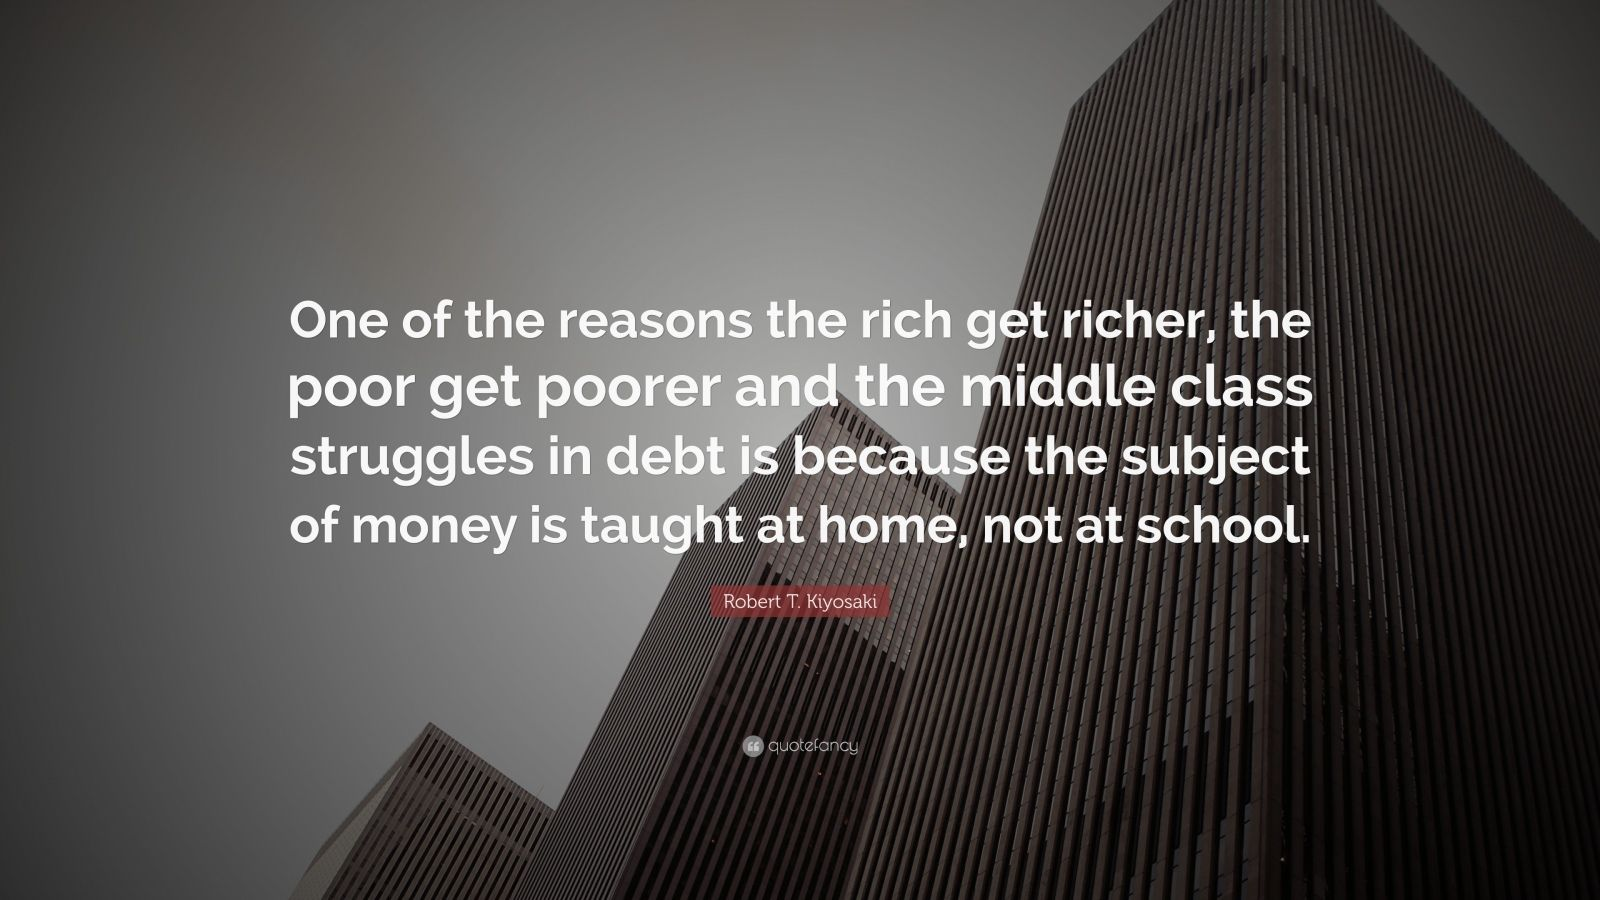 """Robert T. Kiyosaki Quote: """"One of the reasons the rich get richer, the poor get poorer and the middle class struggles in debt is because the subject of money is taught at home, not at school."""""""